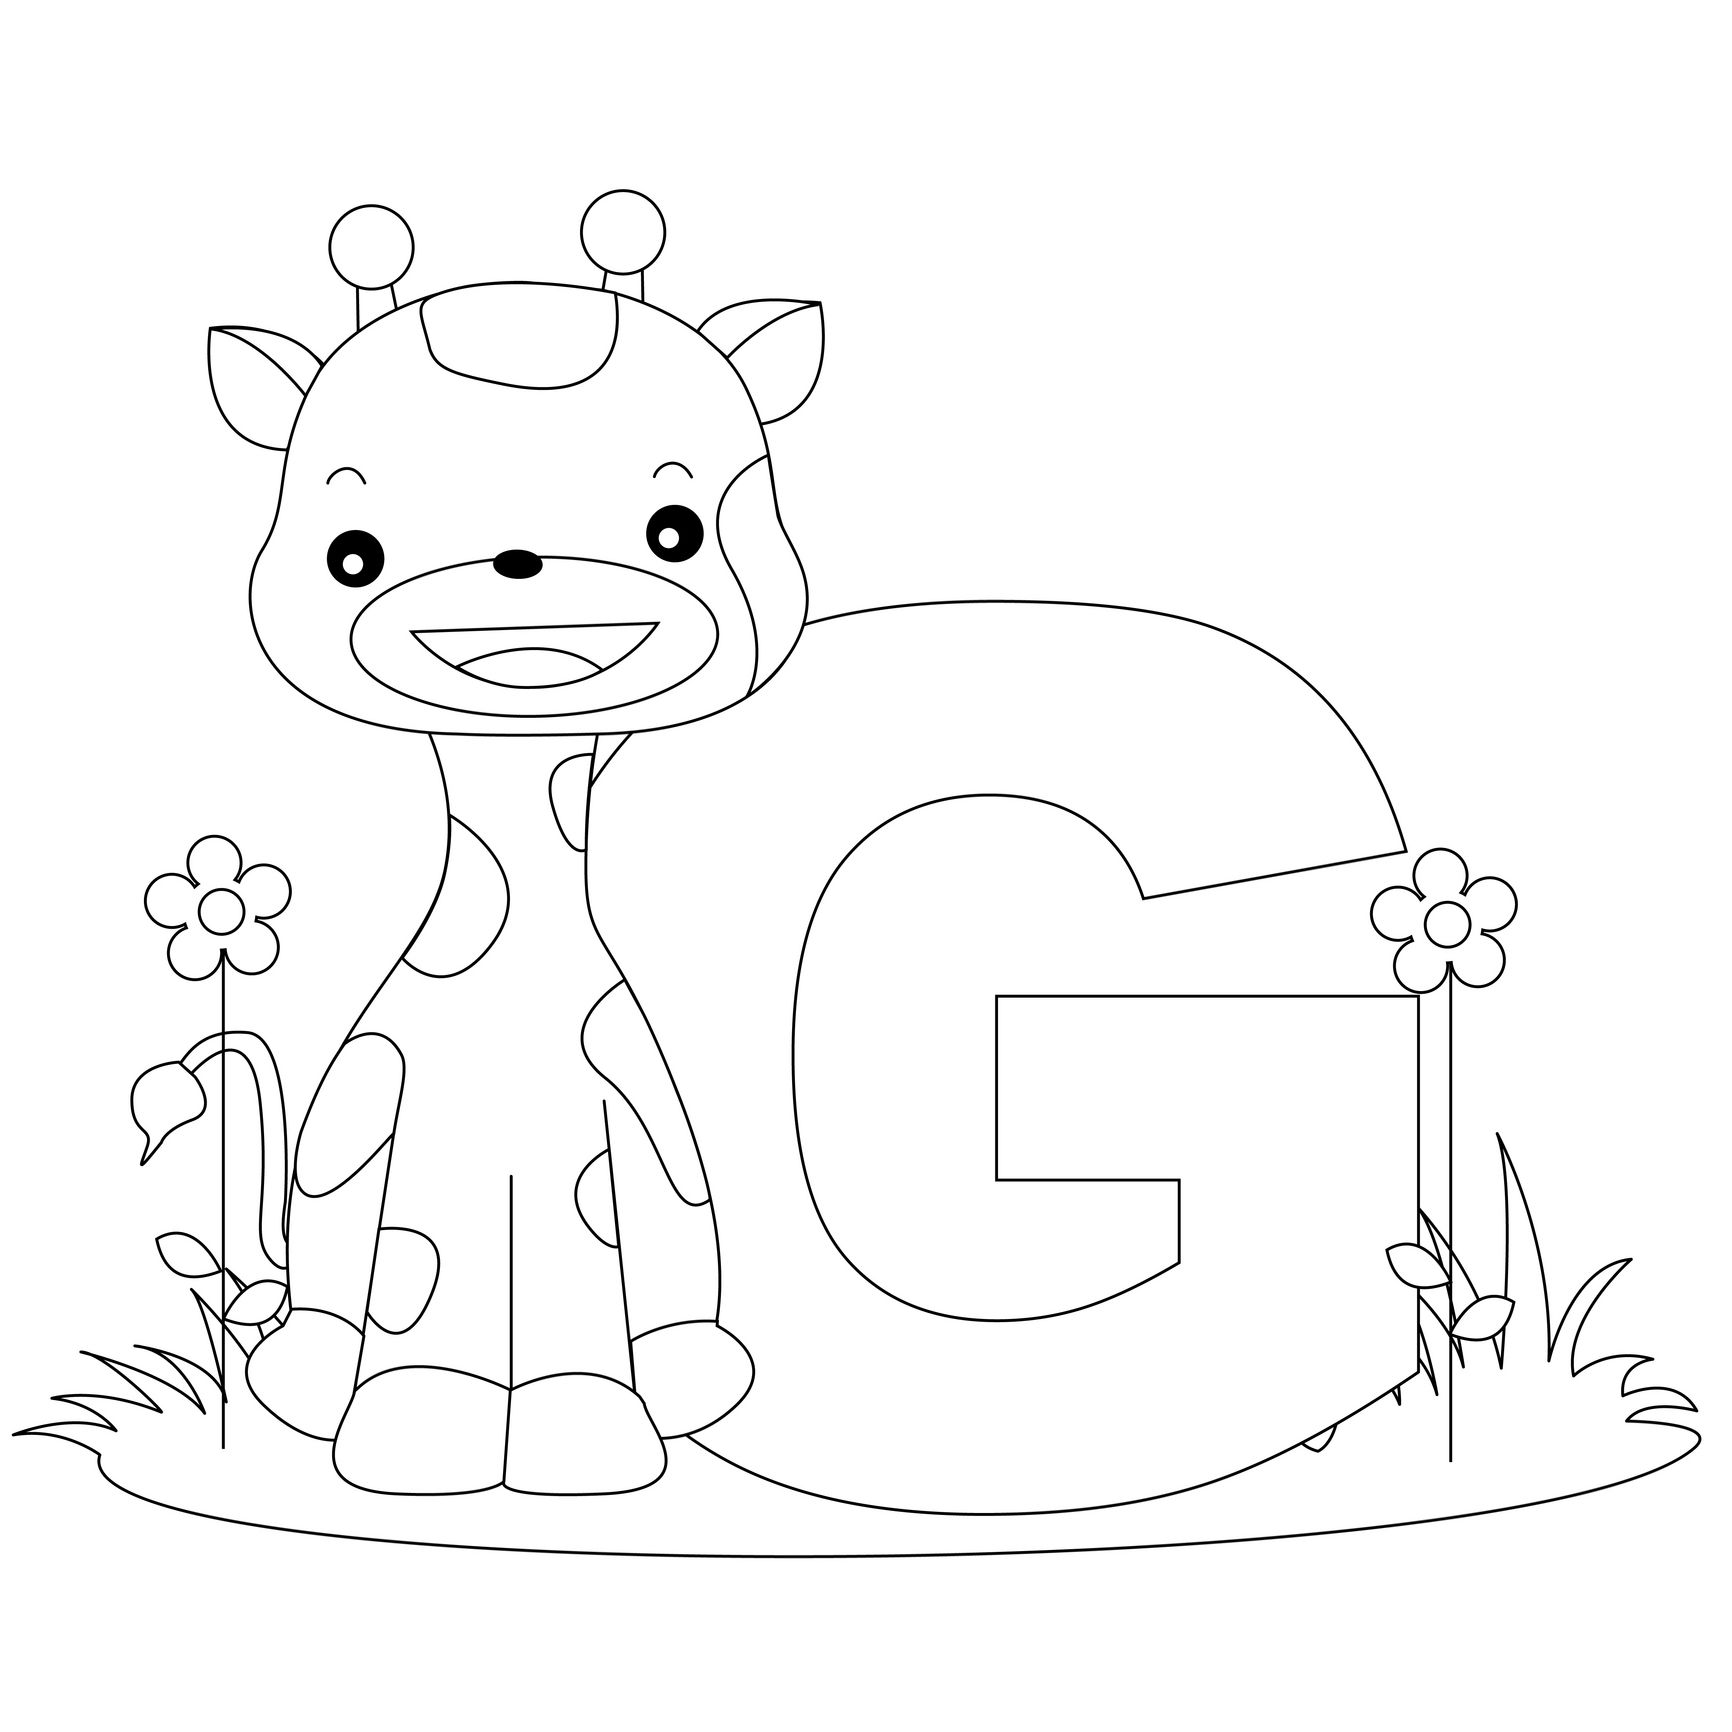 animal alphabet letter g is for giraffe heres a simple animal alphabet coloring pages printable